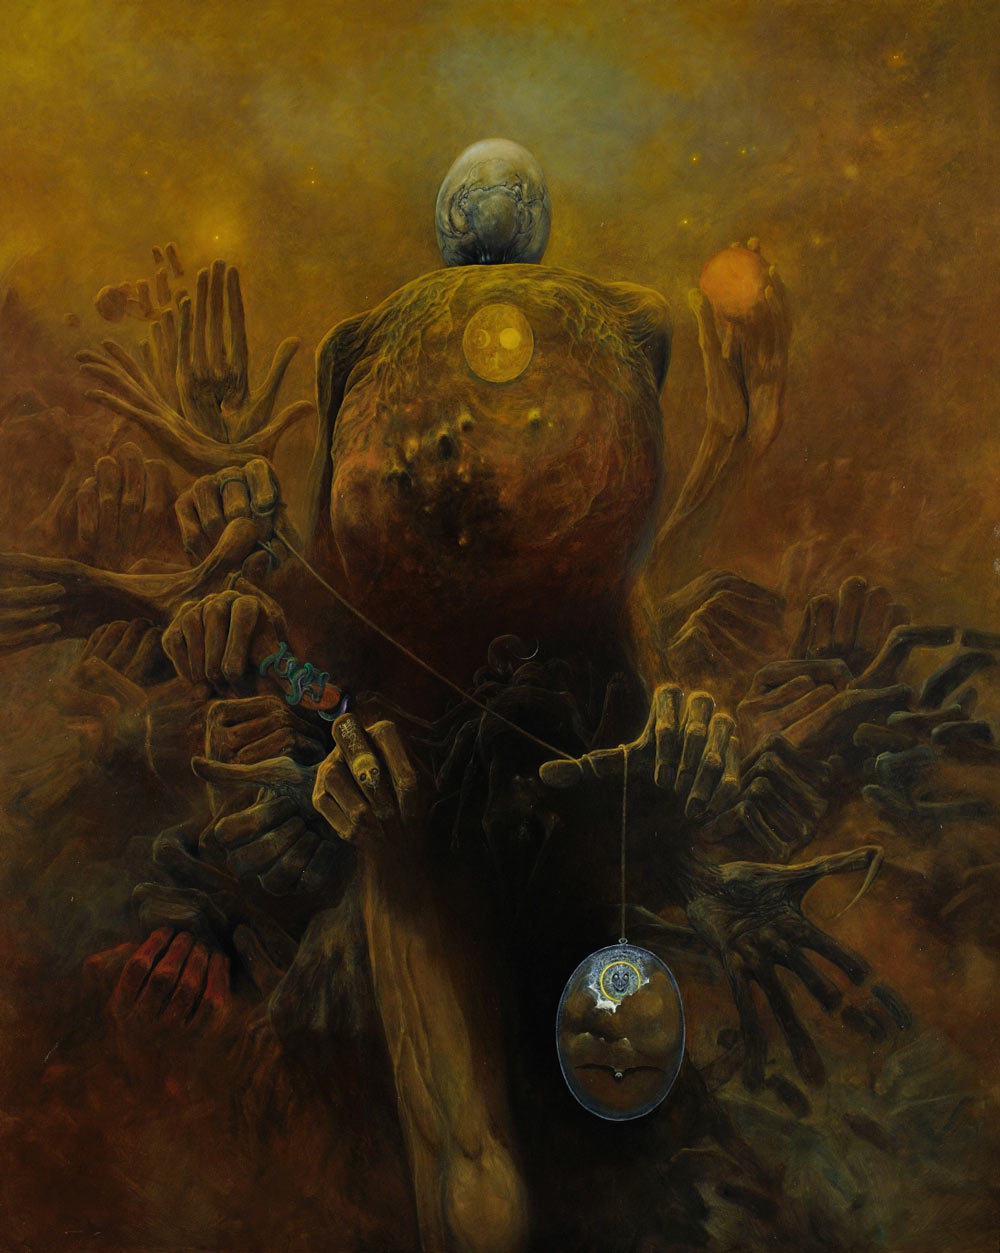 Zdzisław Beksiński, Untitled, oil on fibreboard, photo: courtesy of the Gallery of Zdzisław Beksiński in Historical Museum in Sanok